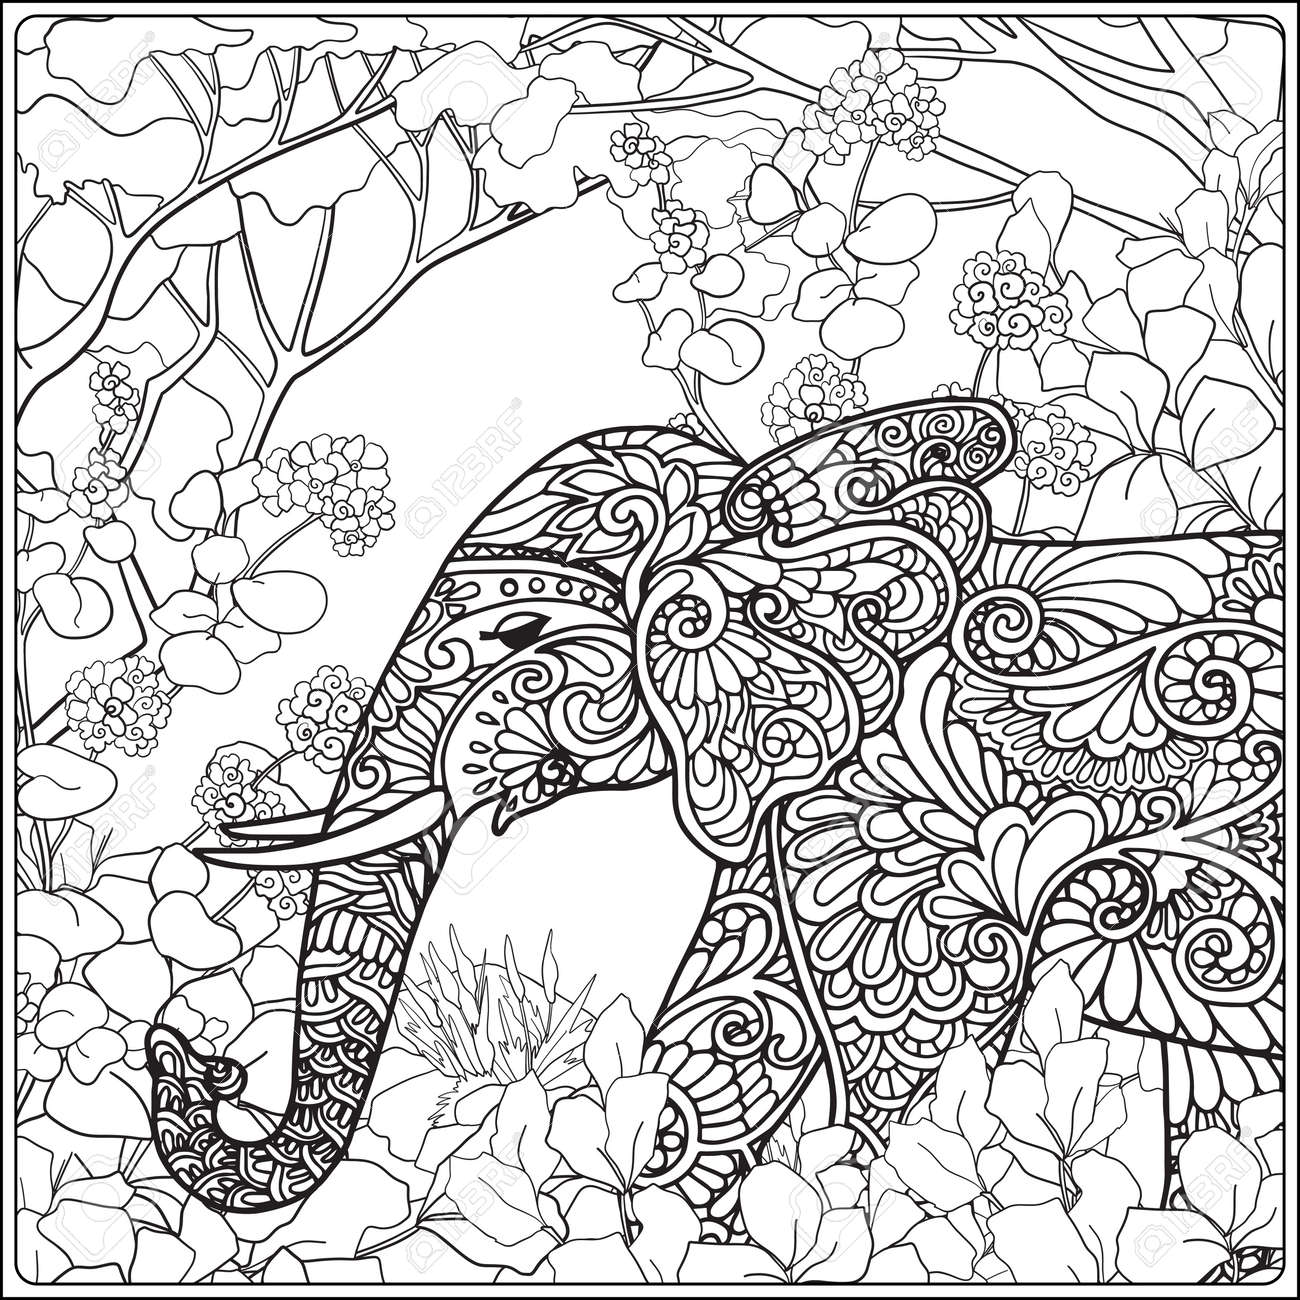 Coloring Page With Elephant In Forest. Coloring Book For Adult ...